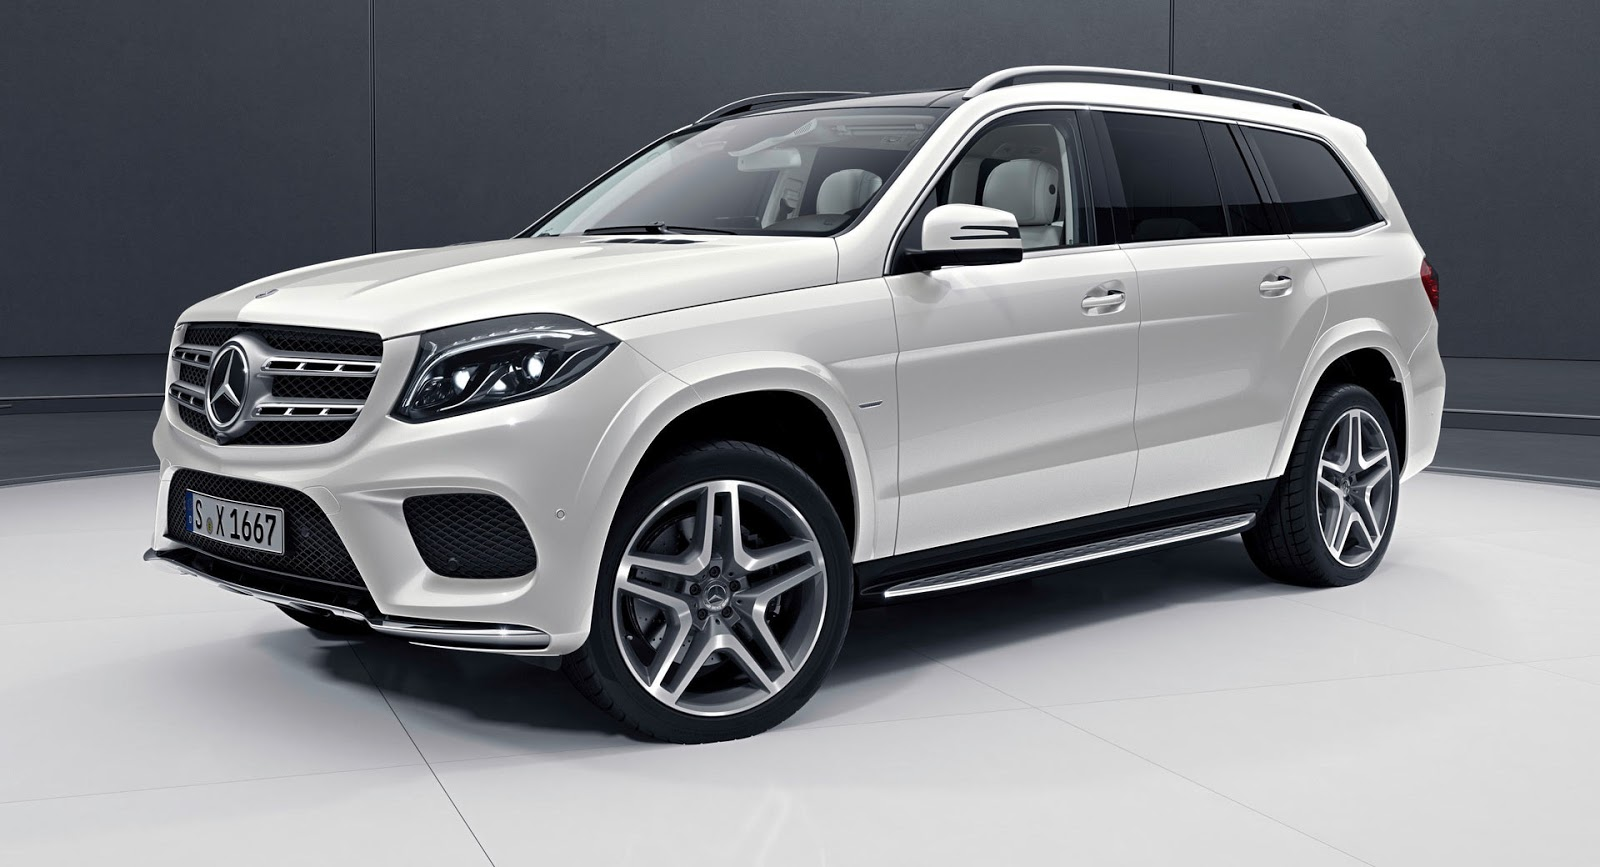 Meet the 2018 Mercedes-Benz GLS Grand Edition